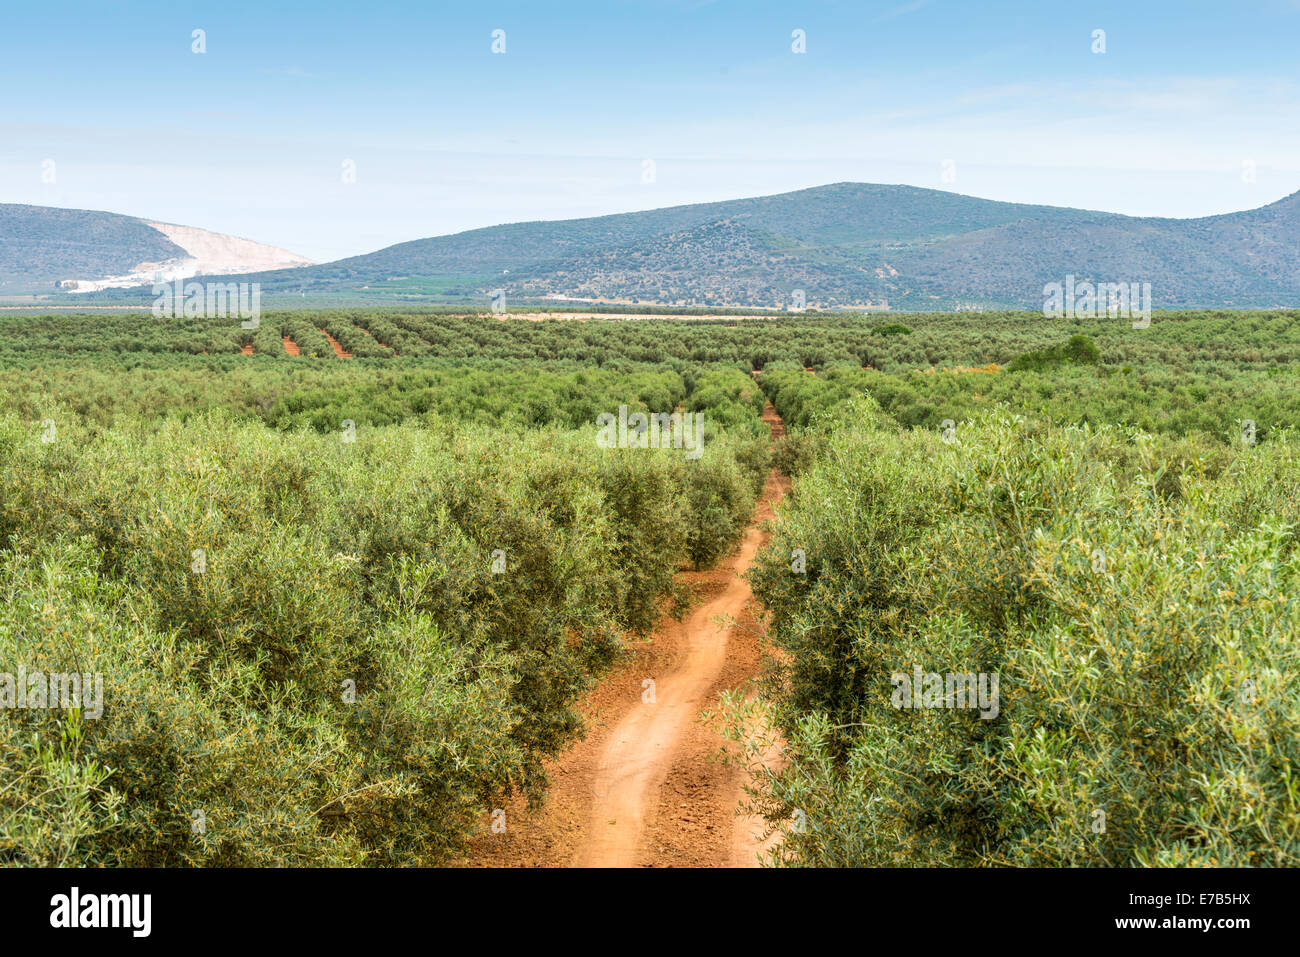 Panoramic view on olive and fruits trees planted in rows. Spain. - Stock Image